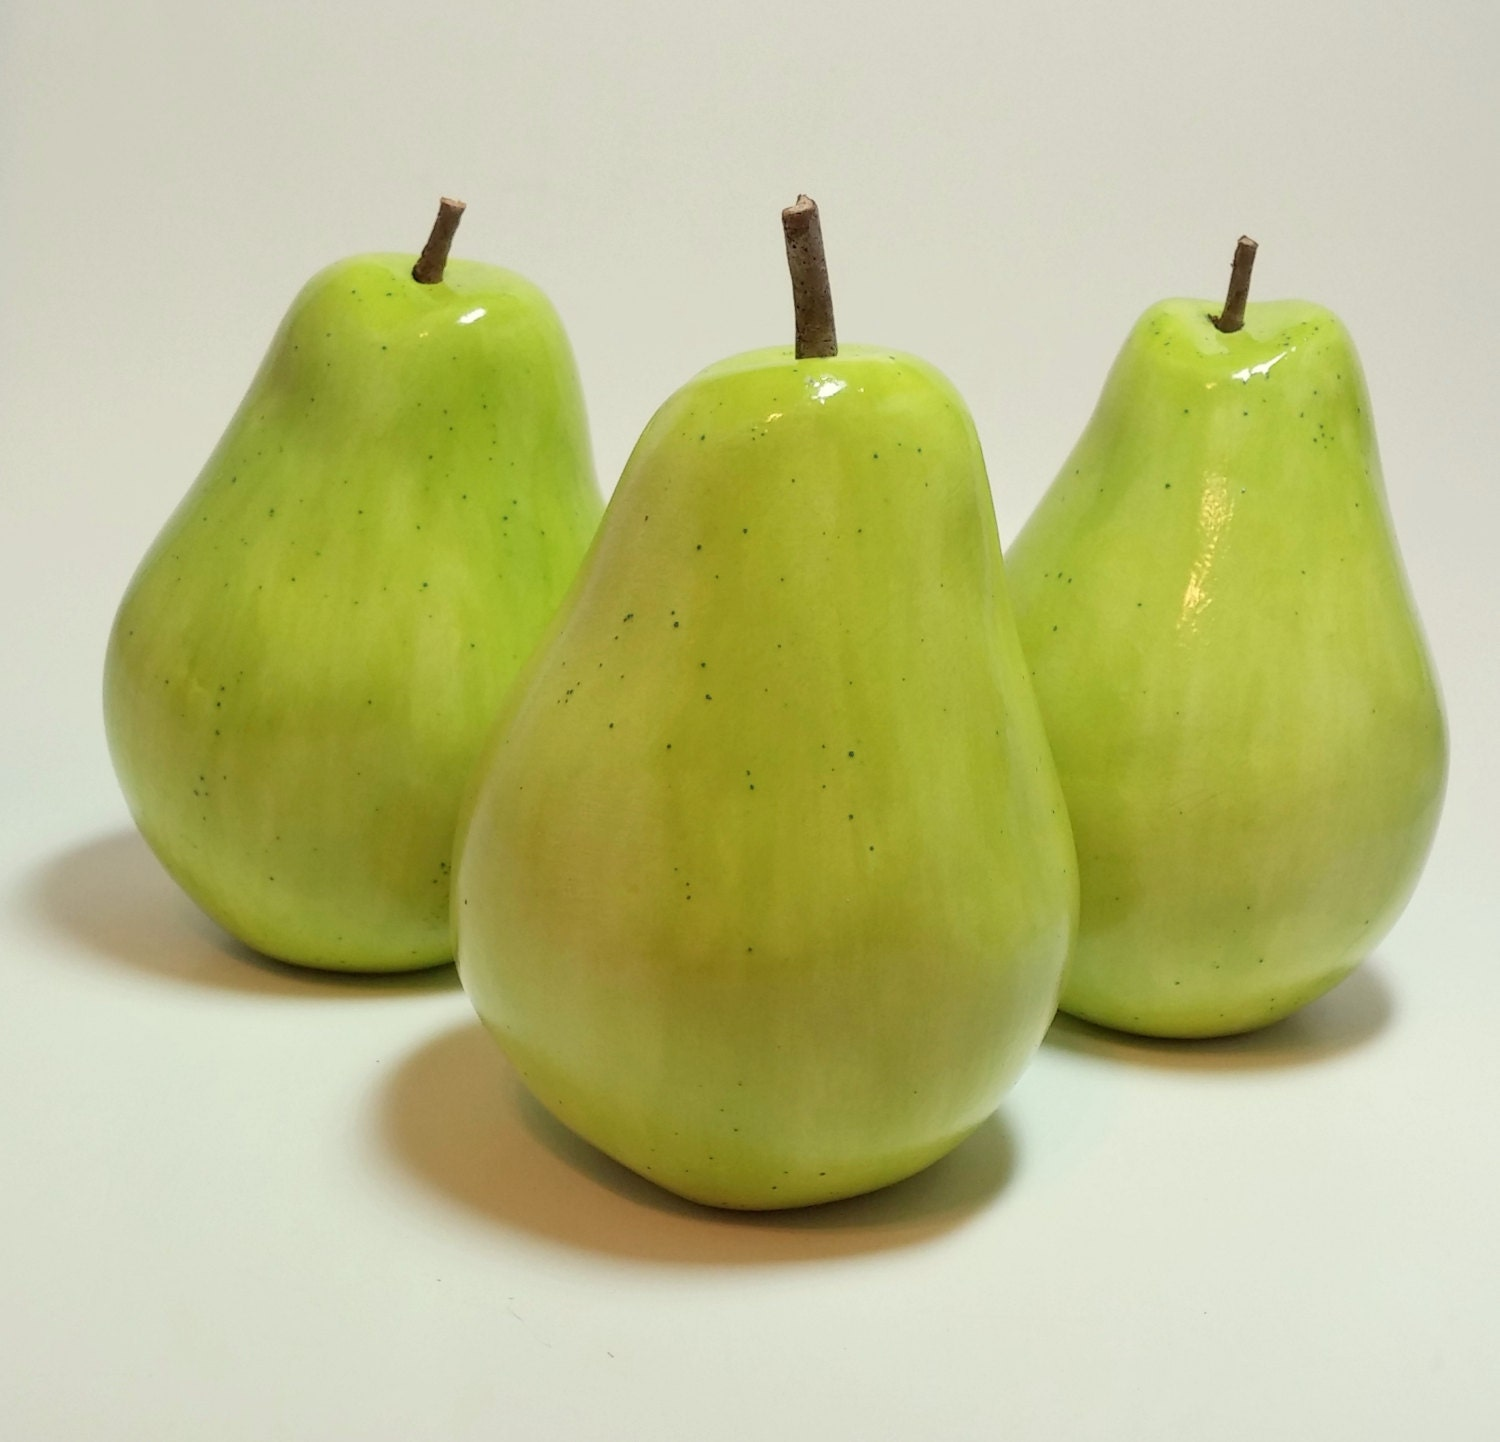 Pear home decor gold pears vase filler modern home decor Pear home decor